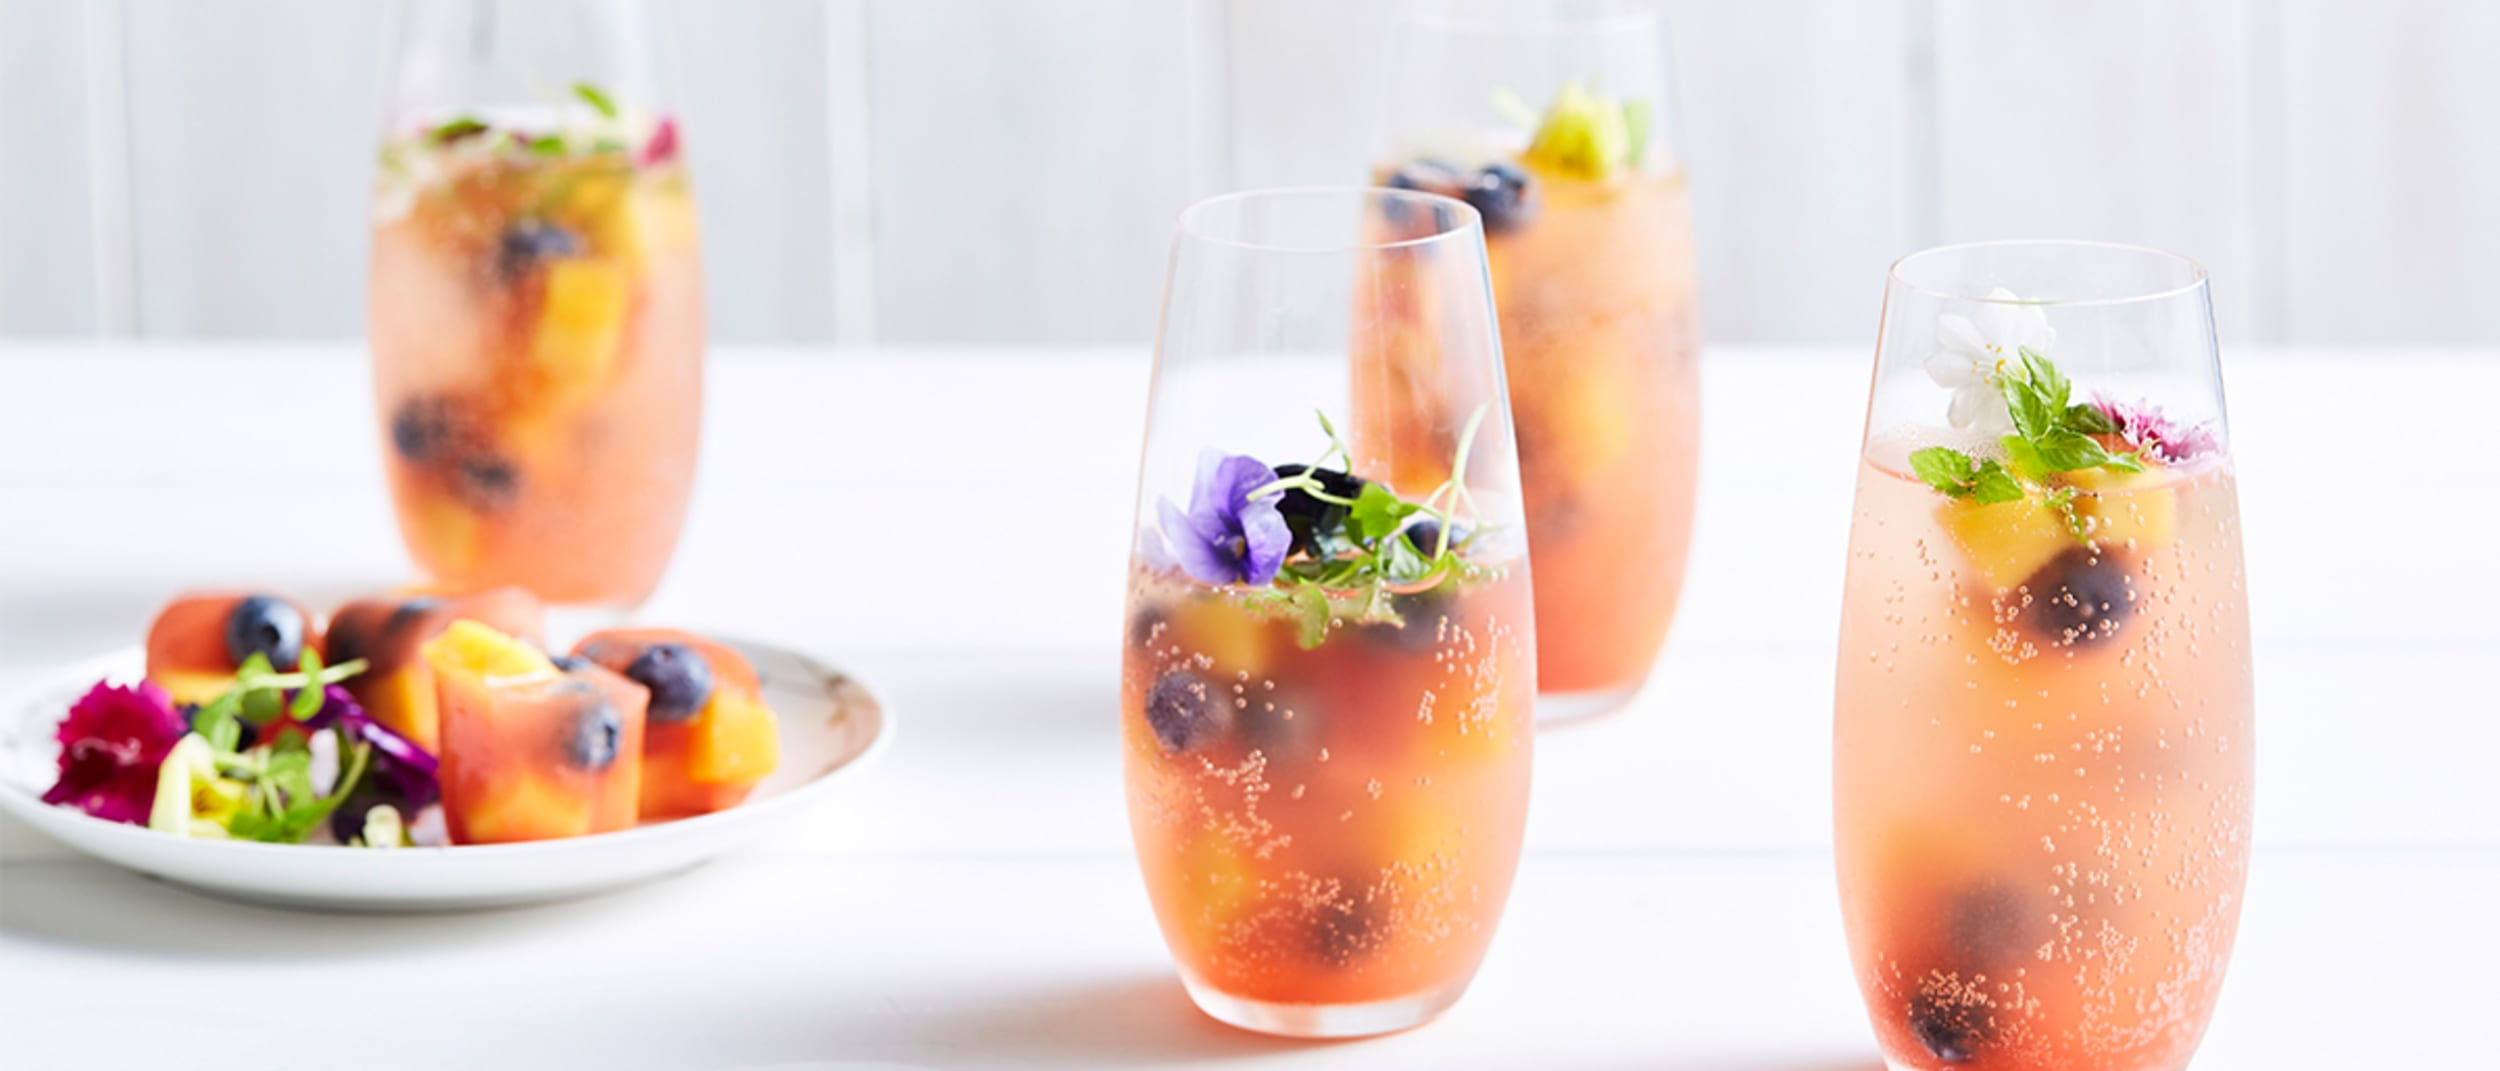 Calypso® Mango and Perfection Blueberry gin and tonic